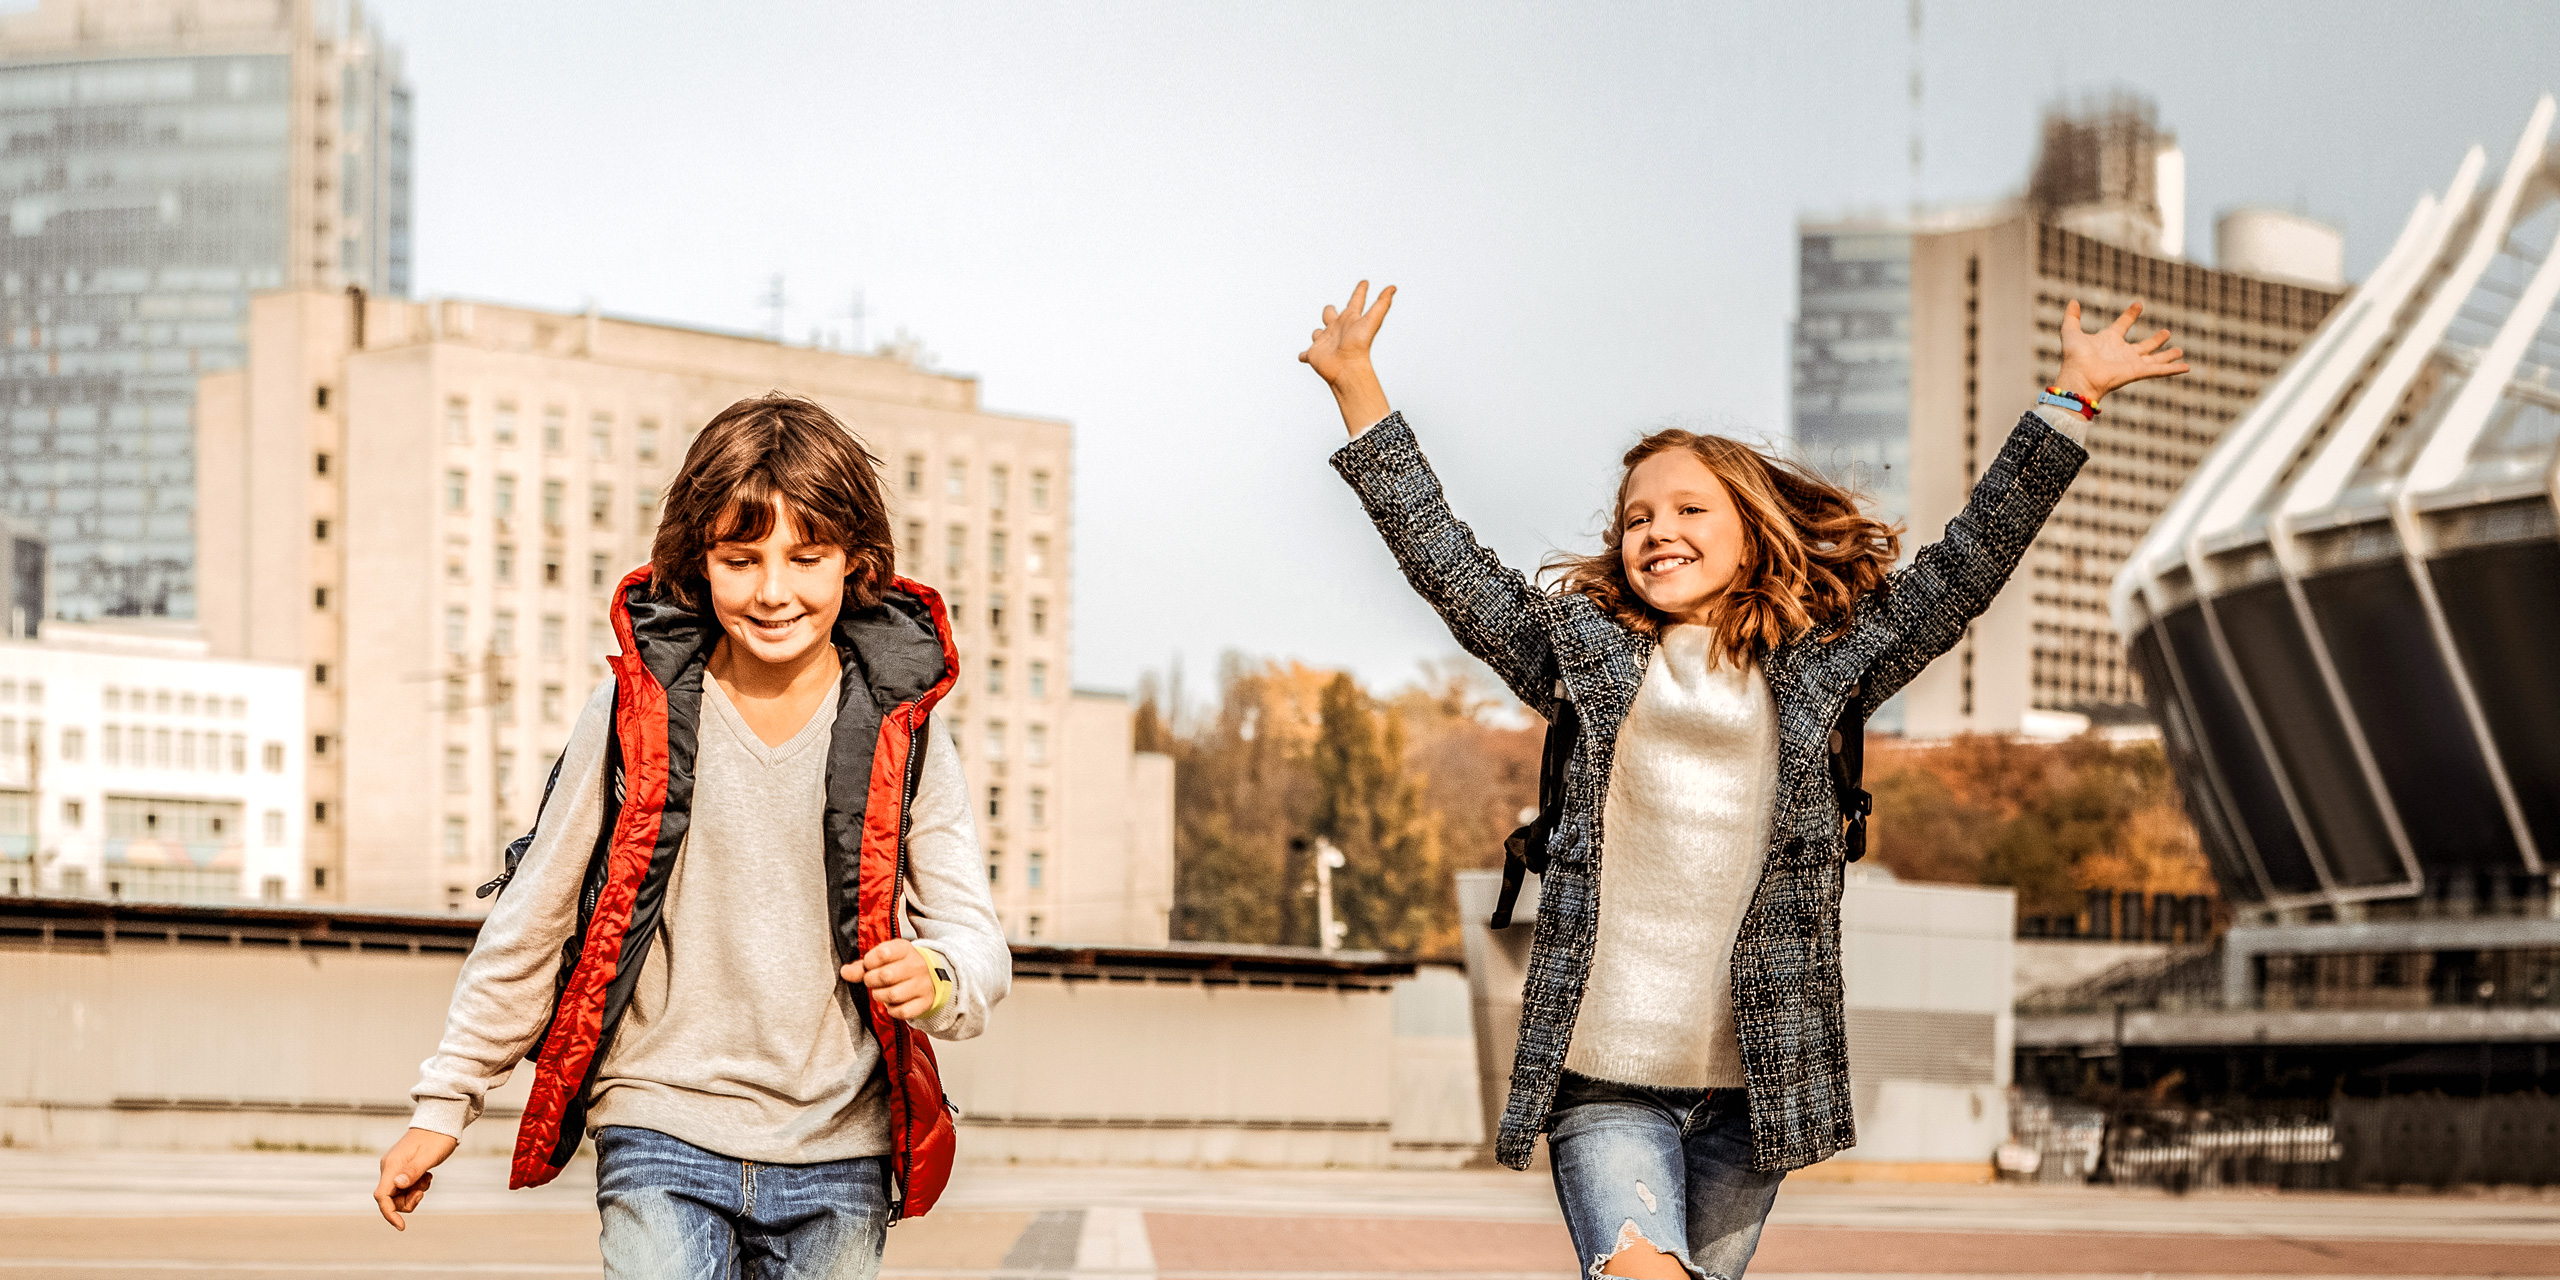 two kids running wearing fall jackets; Courtesy of By YAKOBCHUK VIACHESLAV/Shutterstock